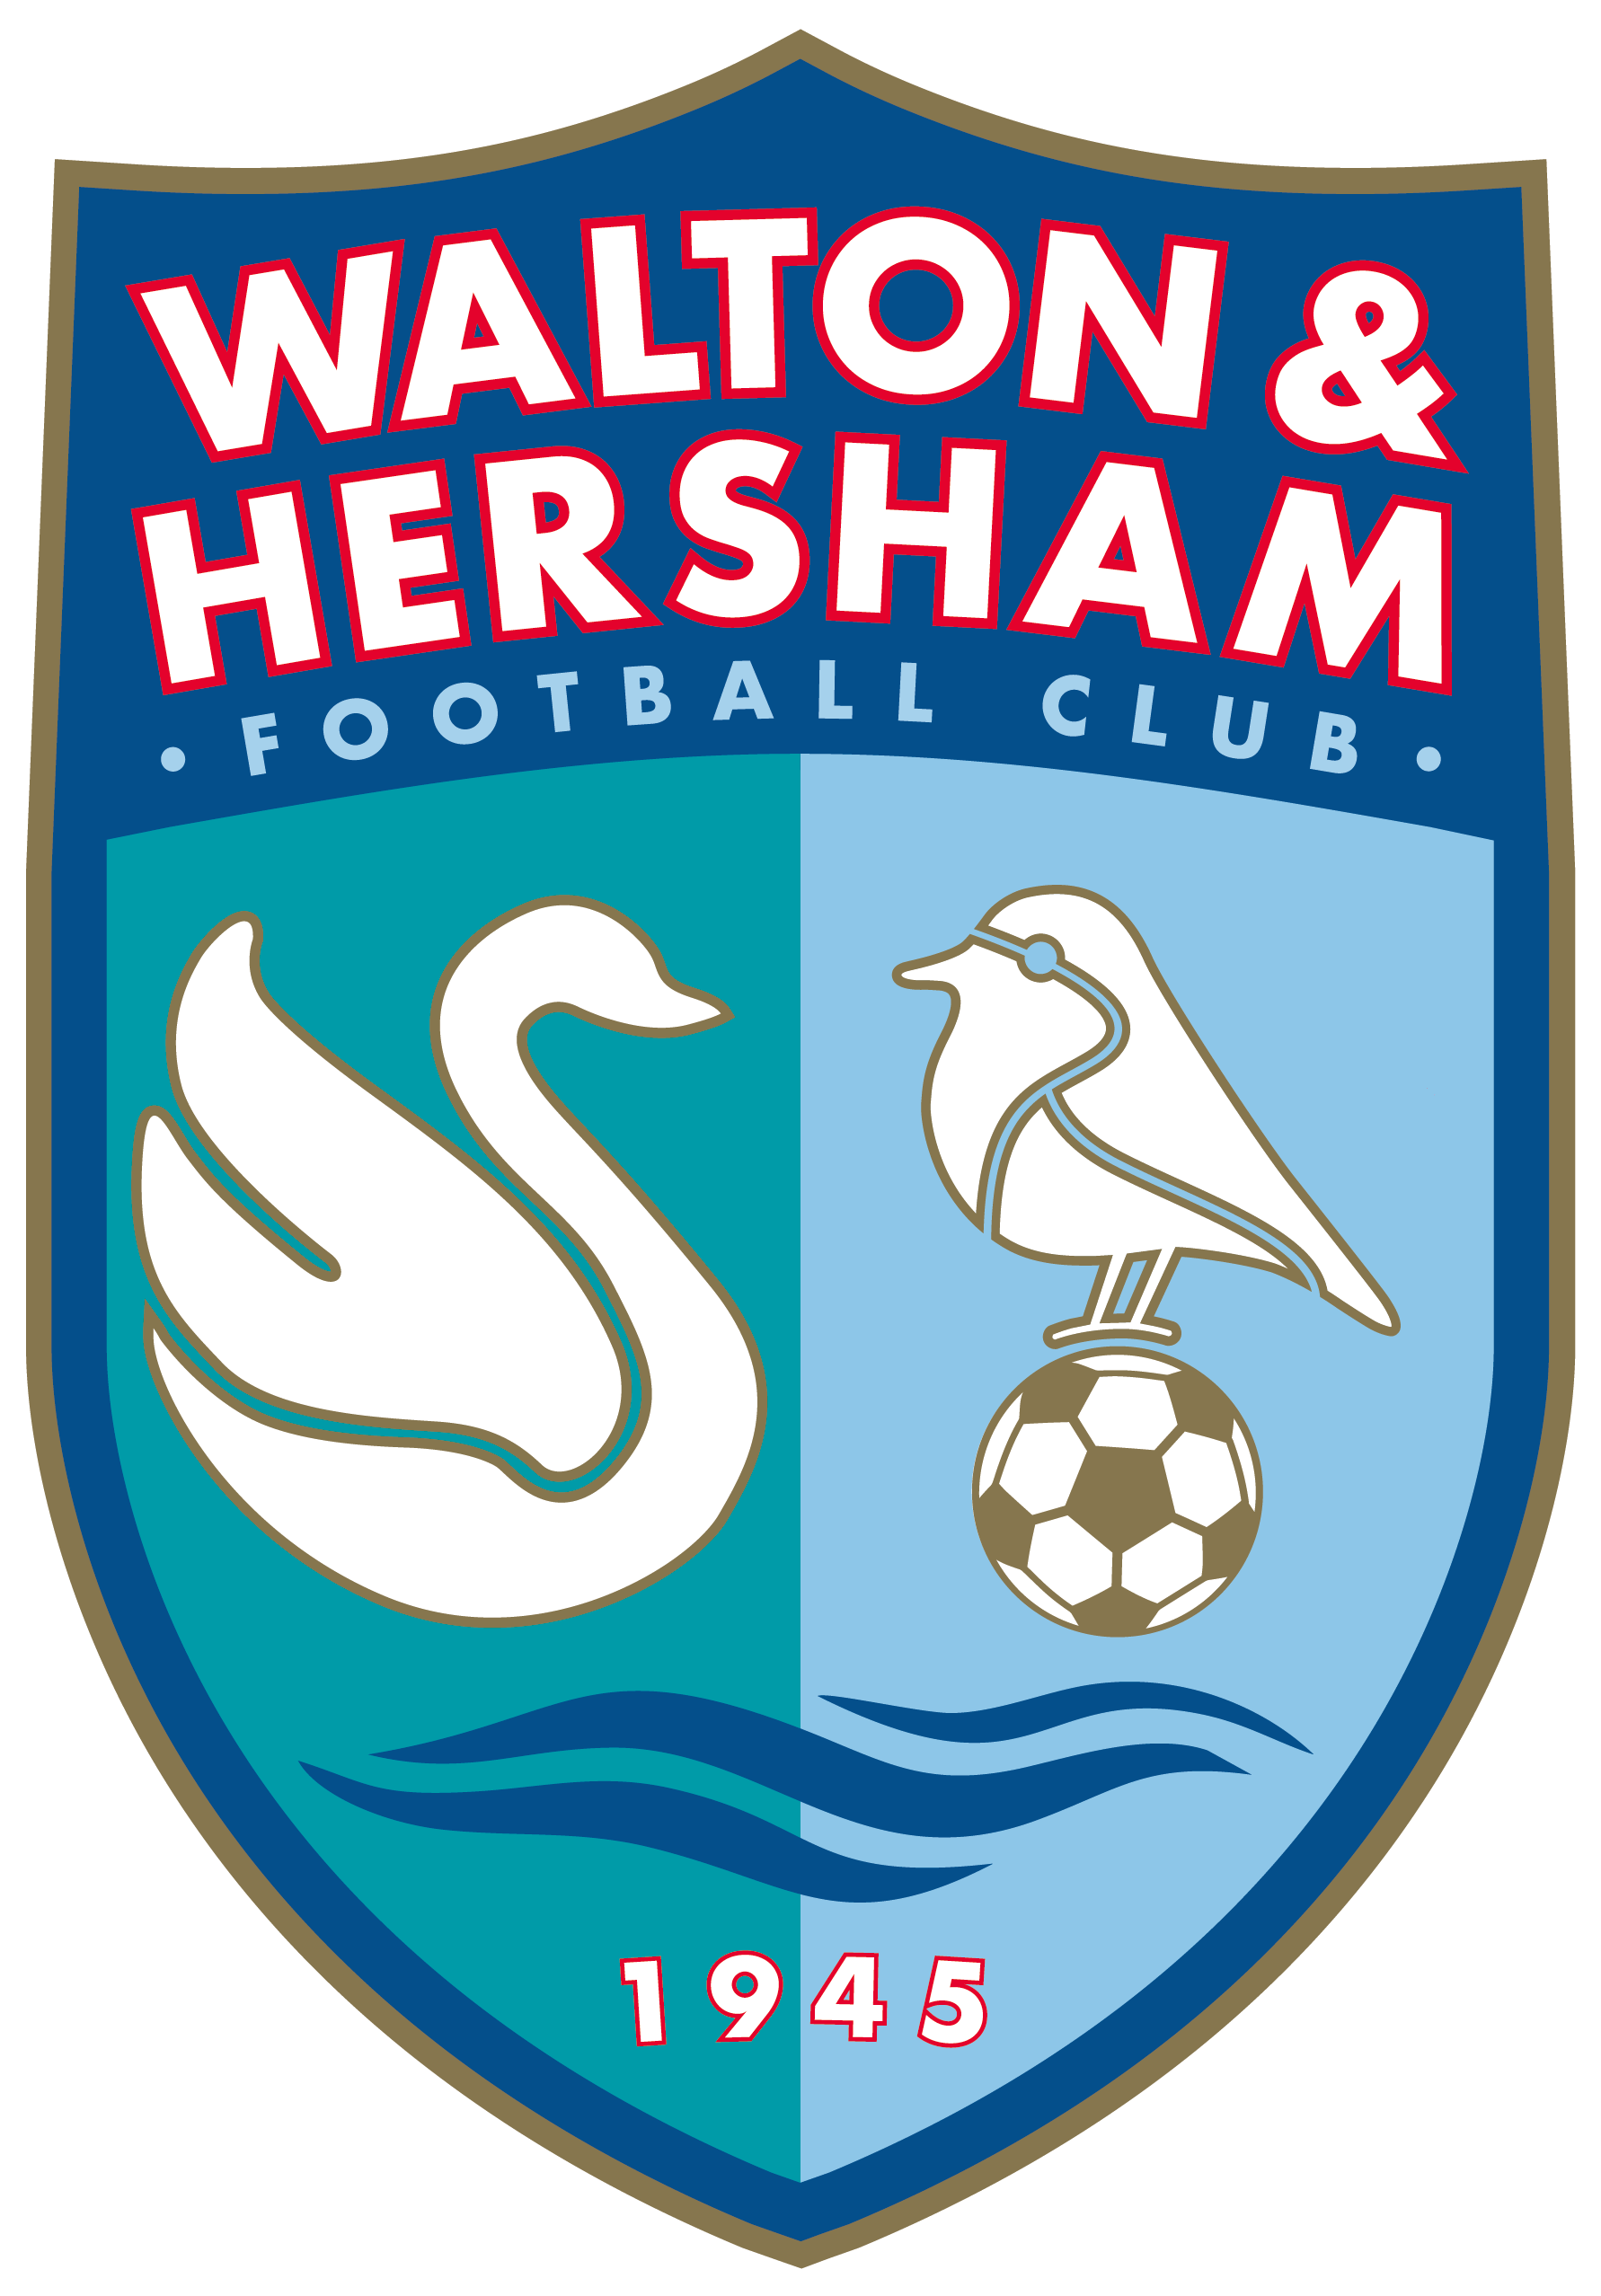 Walton & Hersham Football Club